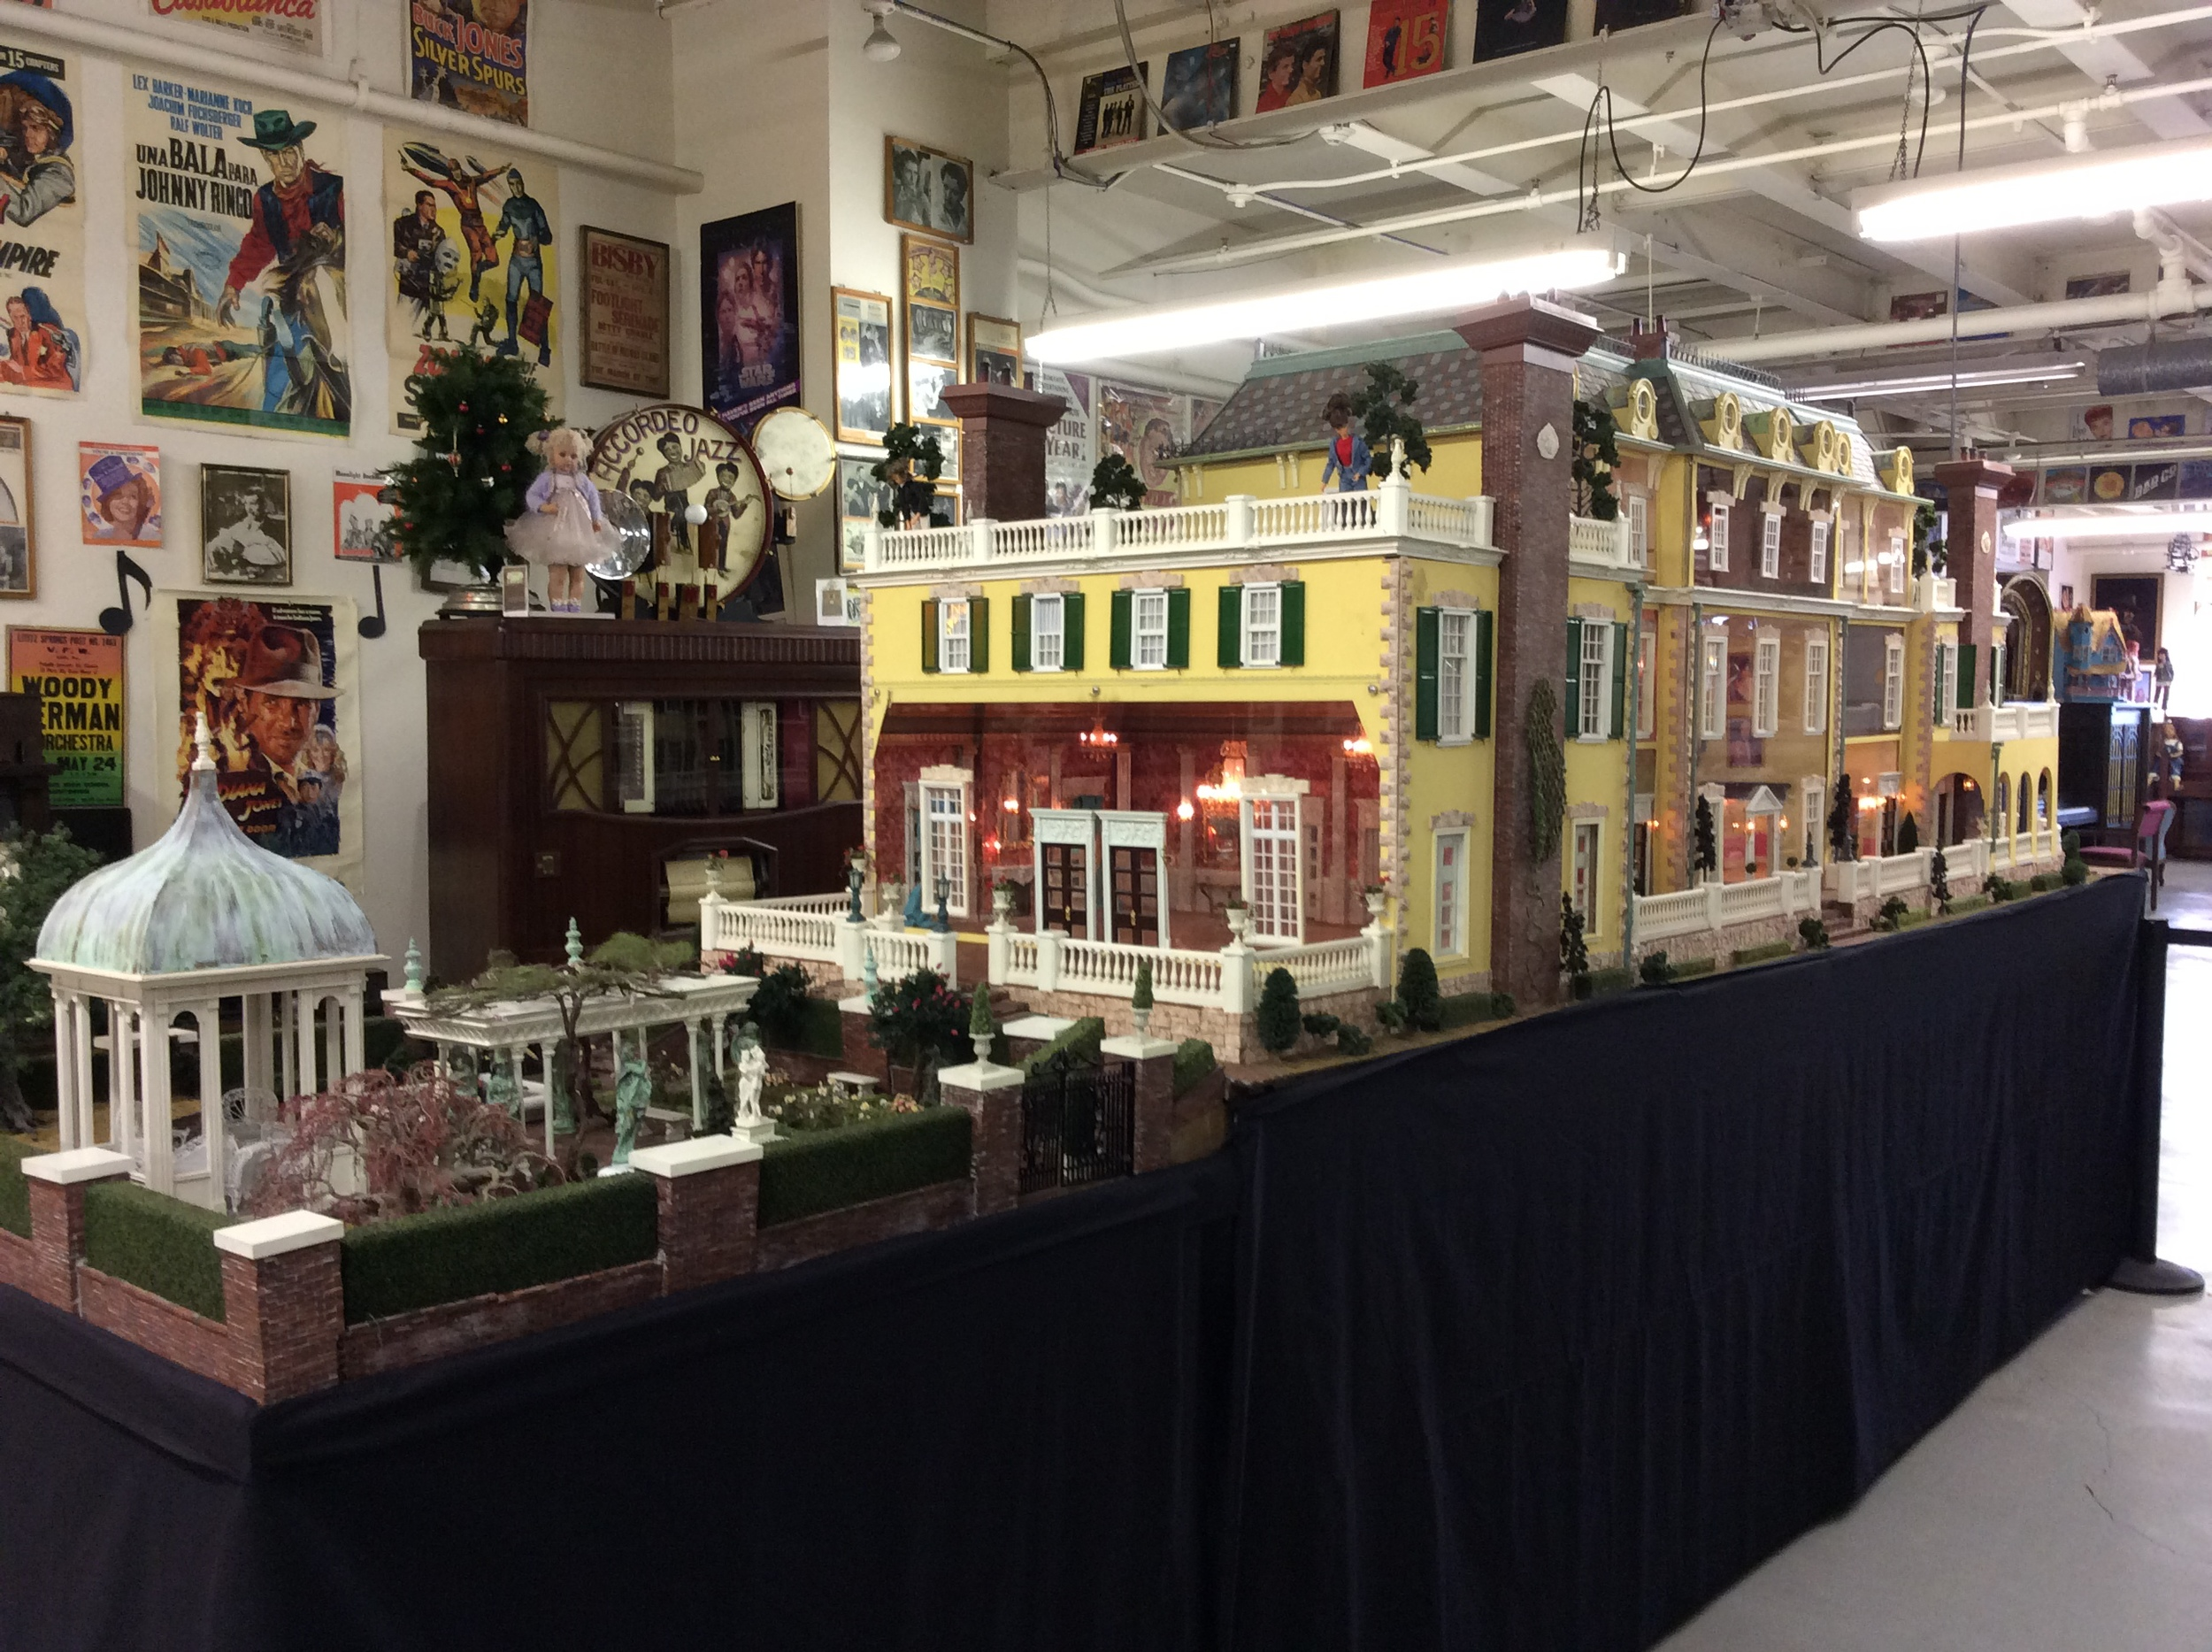 Our 18 foot long doll house just installed in the music room. What a gorgeous beauty it is and you can learn more about this new addition when you come to visit us.  Speaking of visits ... it is time to visit today's birthday highlight: On this date in 1894, this poet and author was born. Who is he?